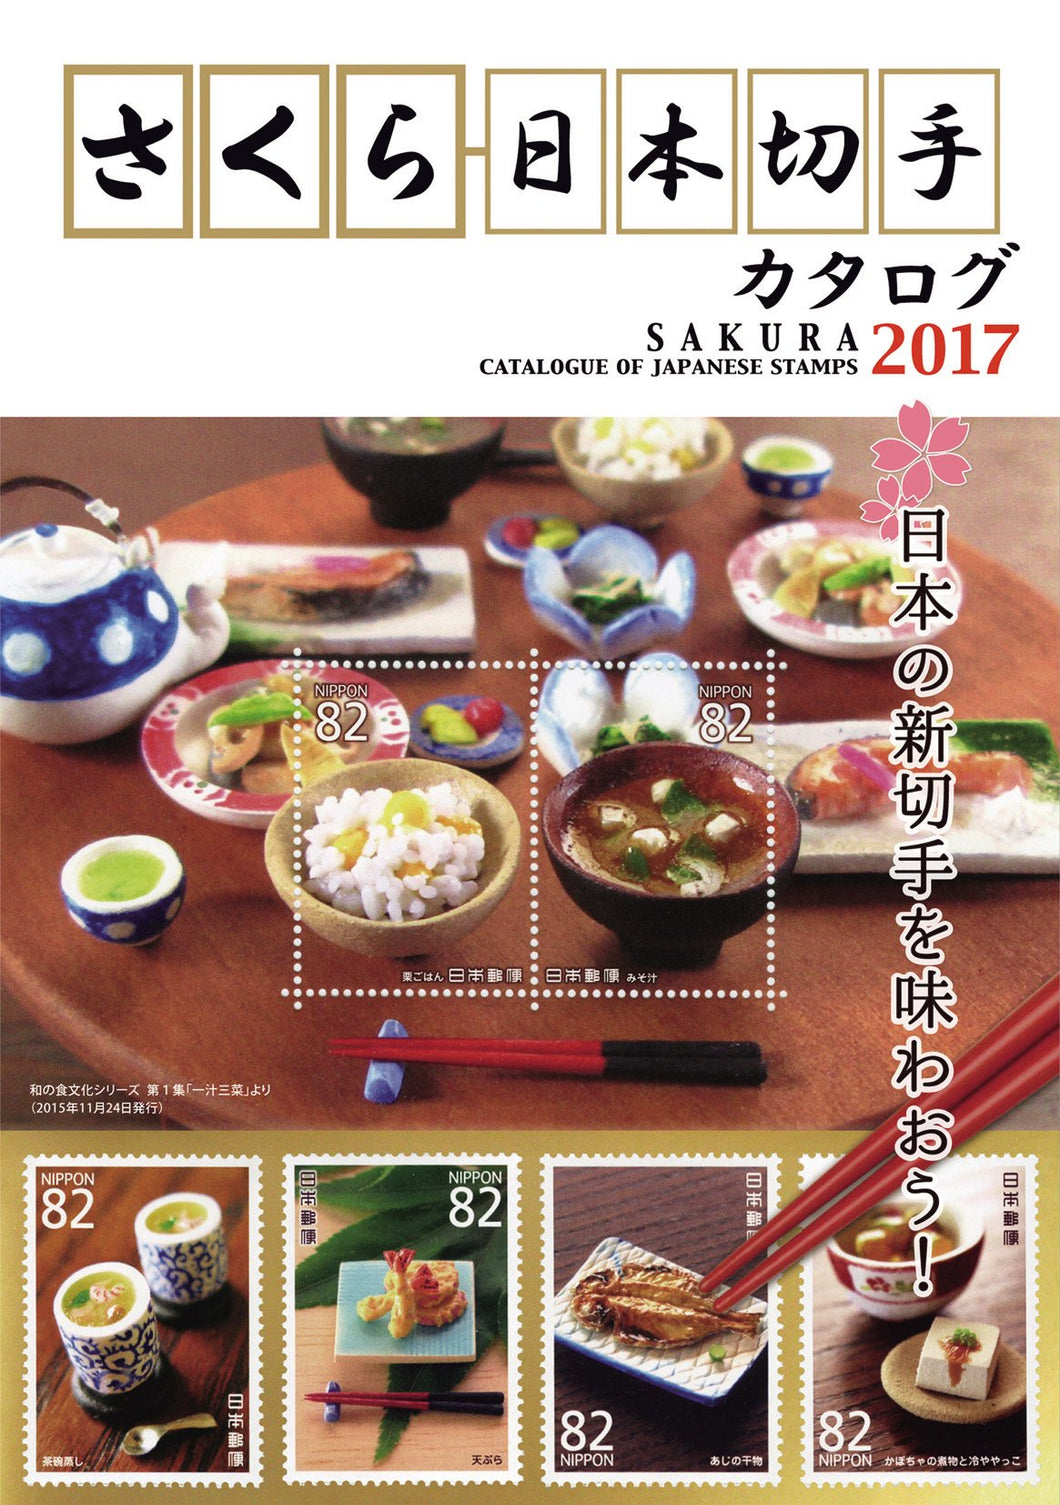 Sakura Japanese Stamp Catalogue 2017 Edition